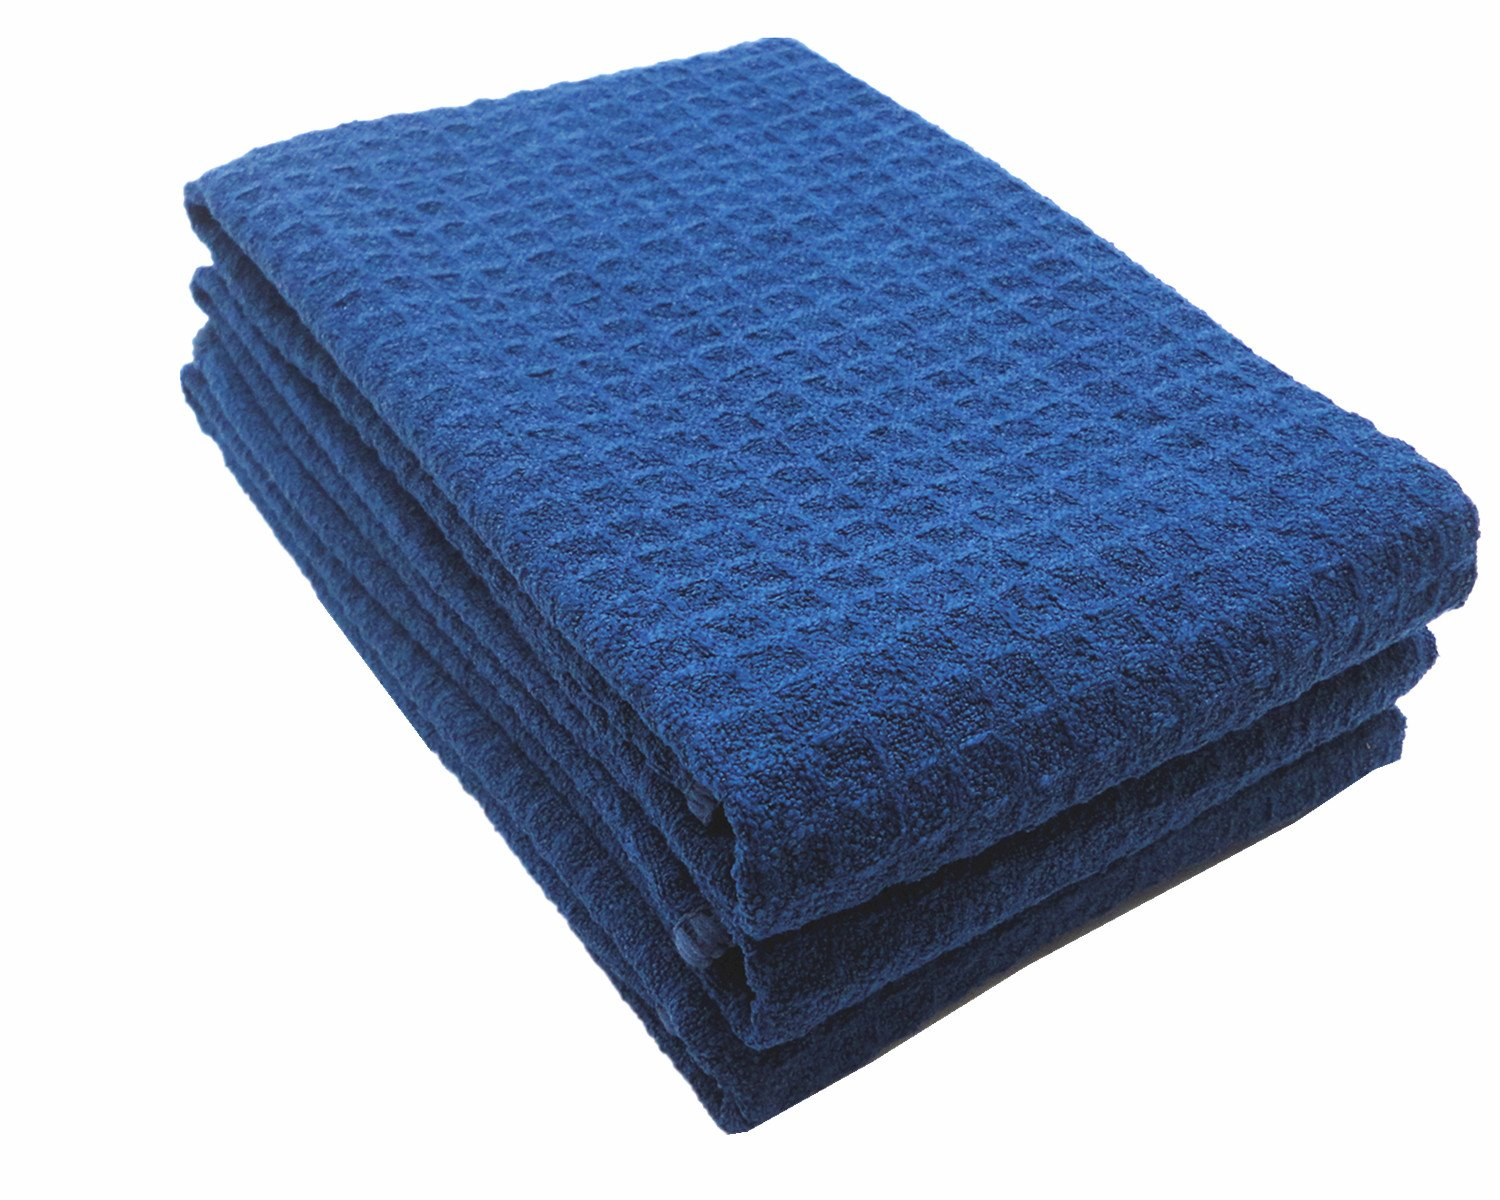 Mia'sDream Microfiber Waffle Weave Kitchen Towels Dish Cloth 3 Pack 16inch X 24inch (Navy Blue)